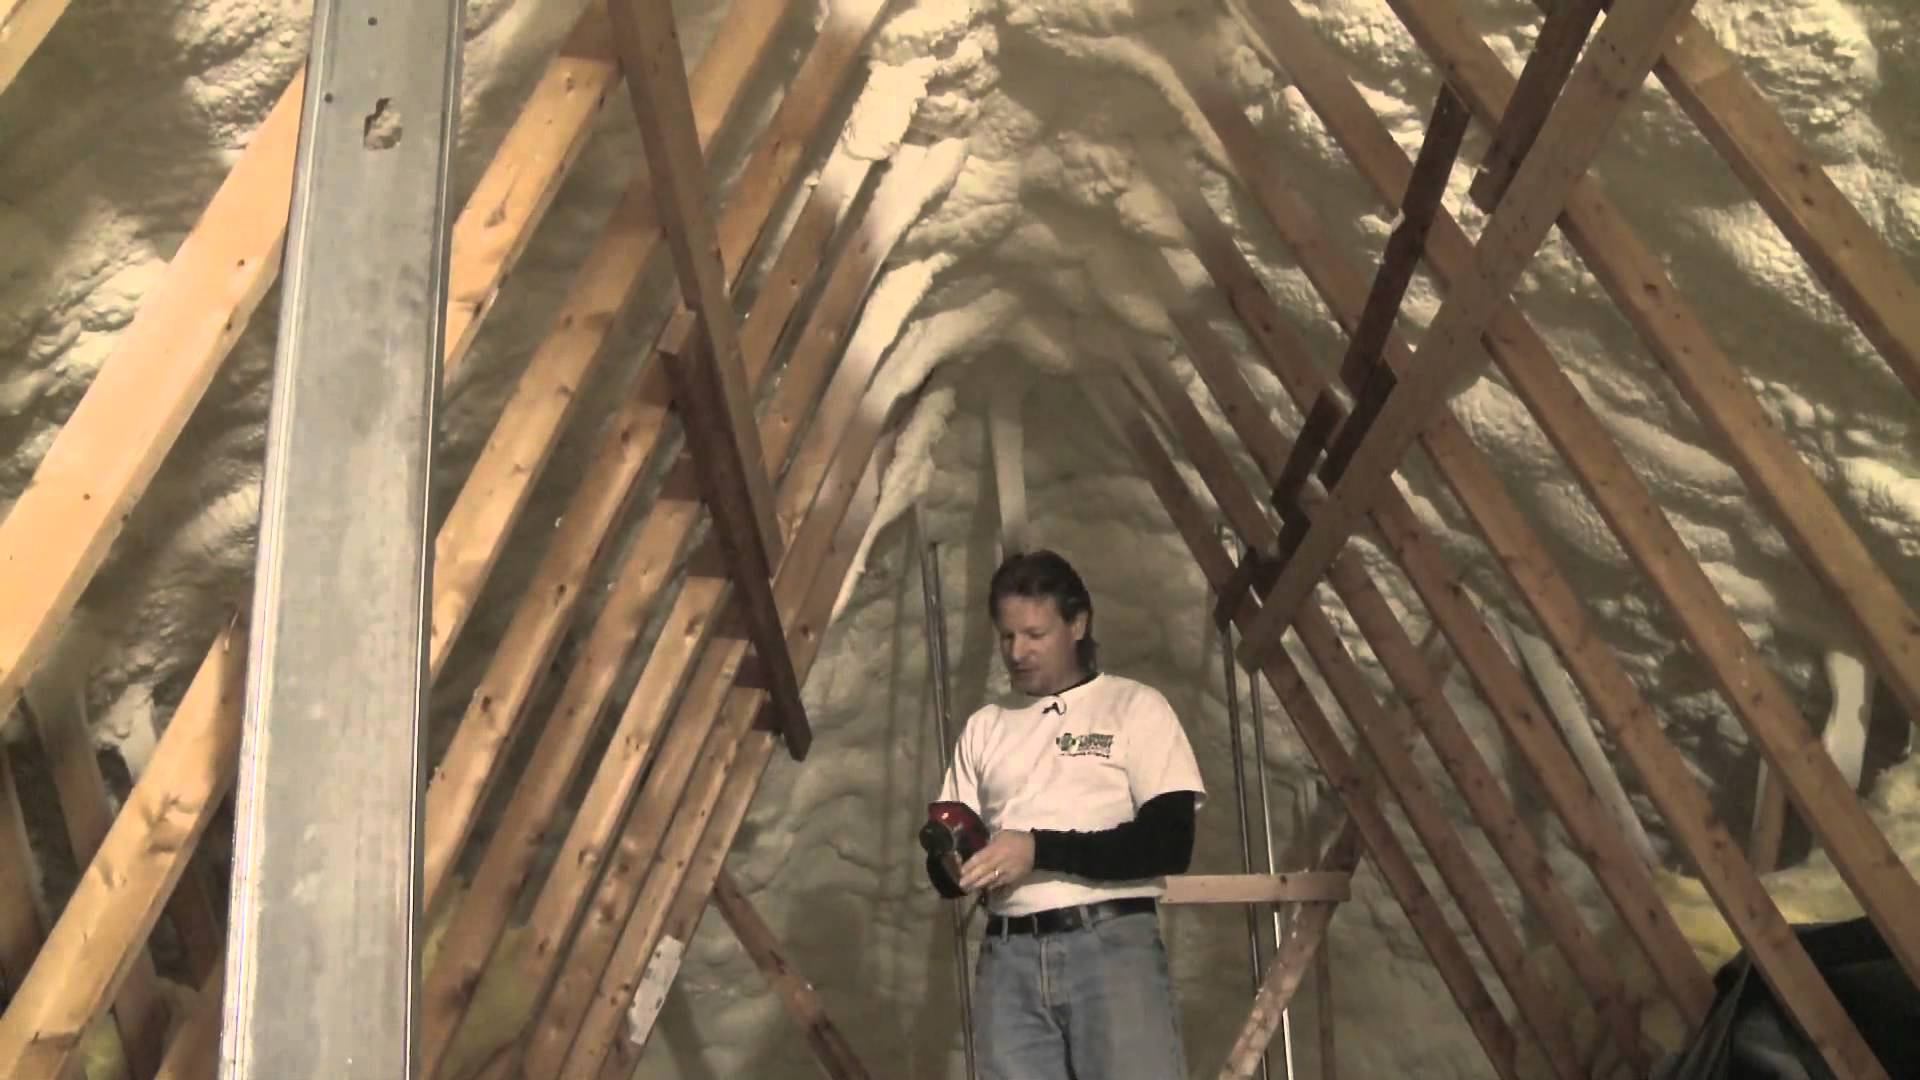 Insulating And Air Sealing An Attic With Spray Foam Short Version inside sizing 1920 X 1080